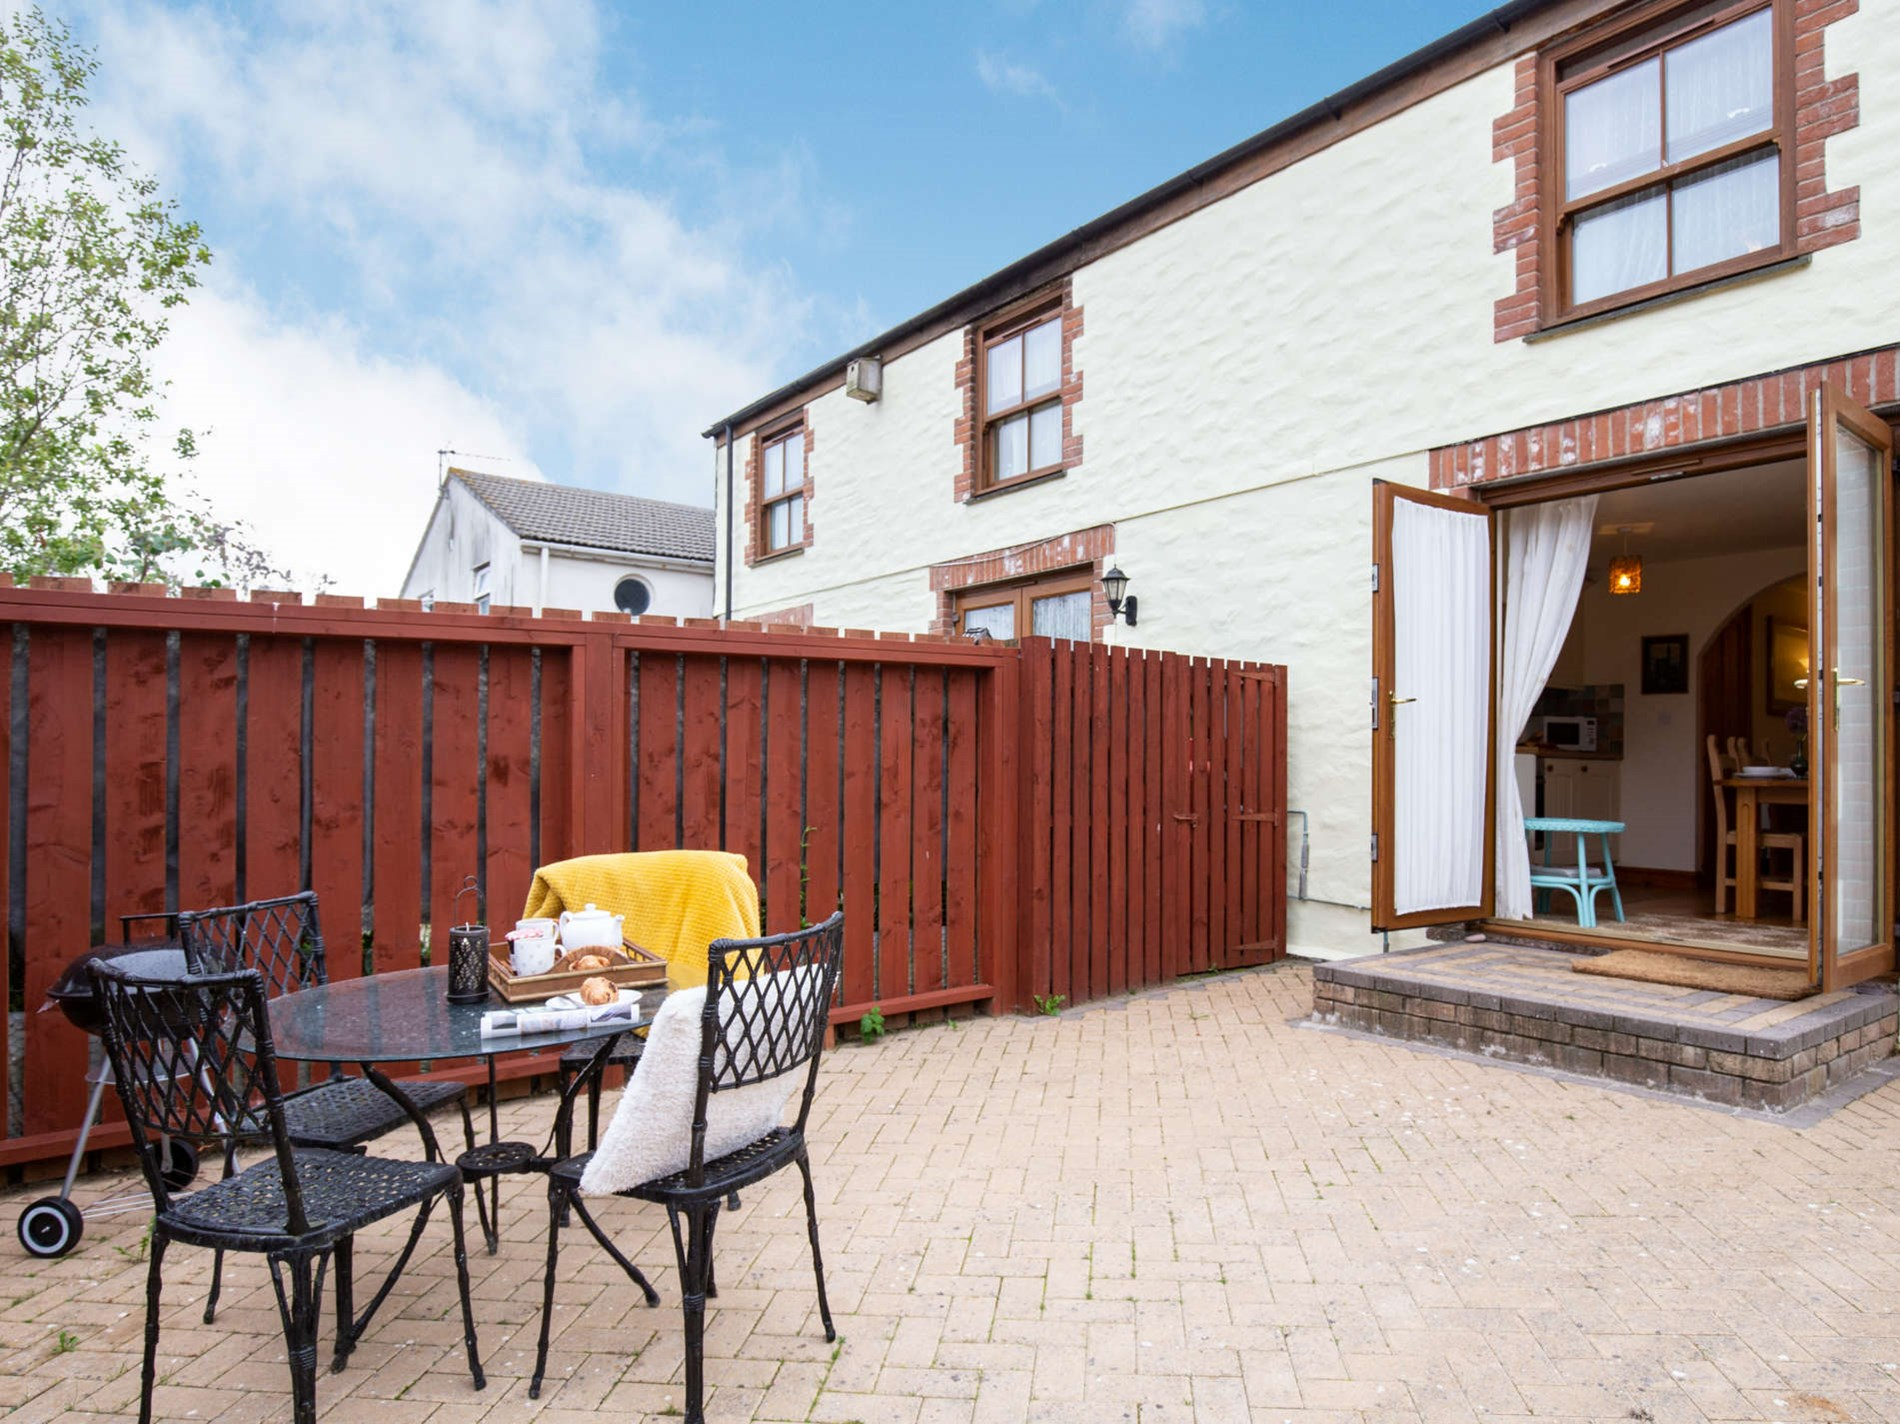 2 Bedroom Cottage in West Cornwall, Cornwall